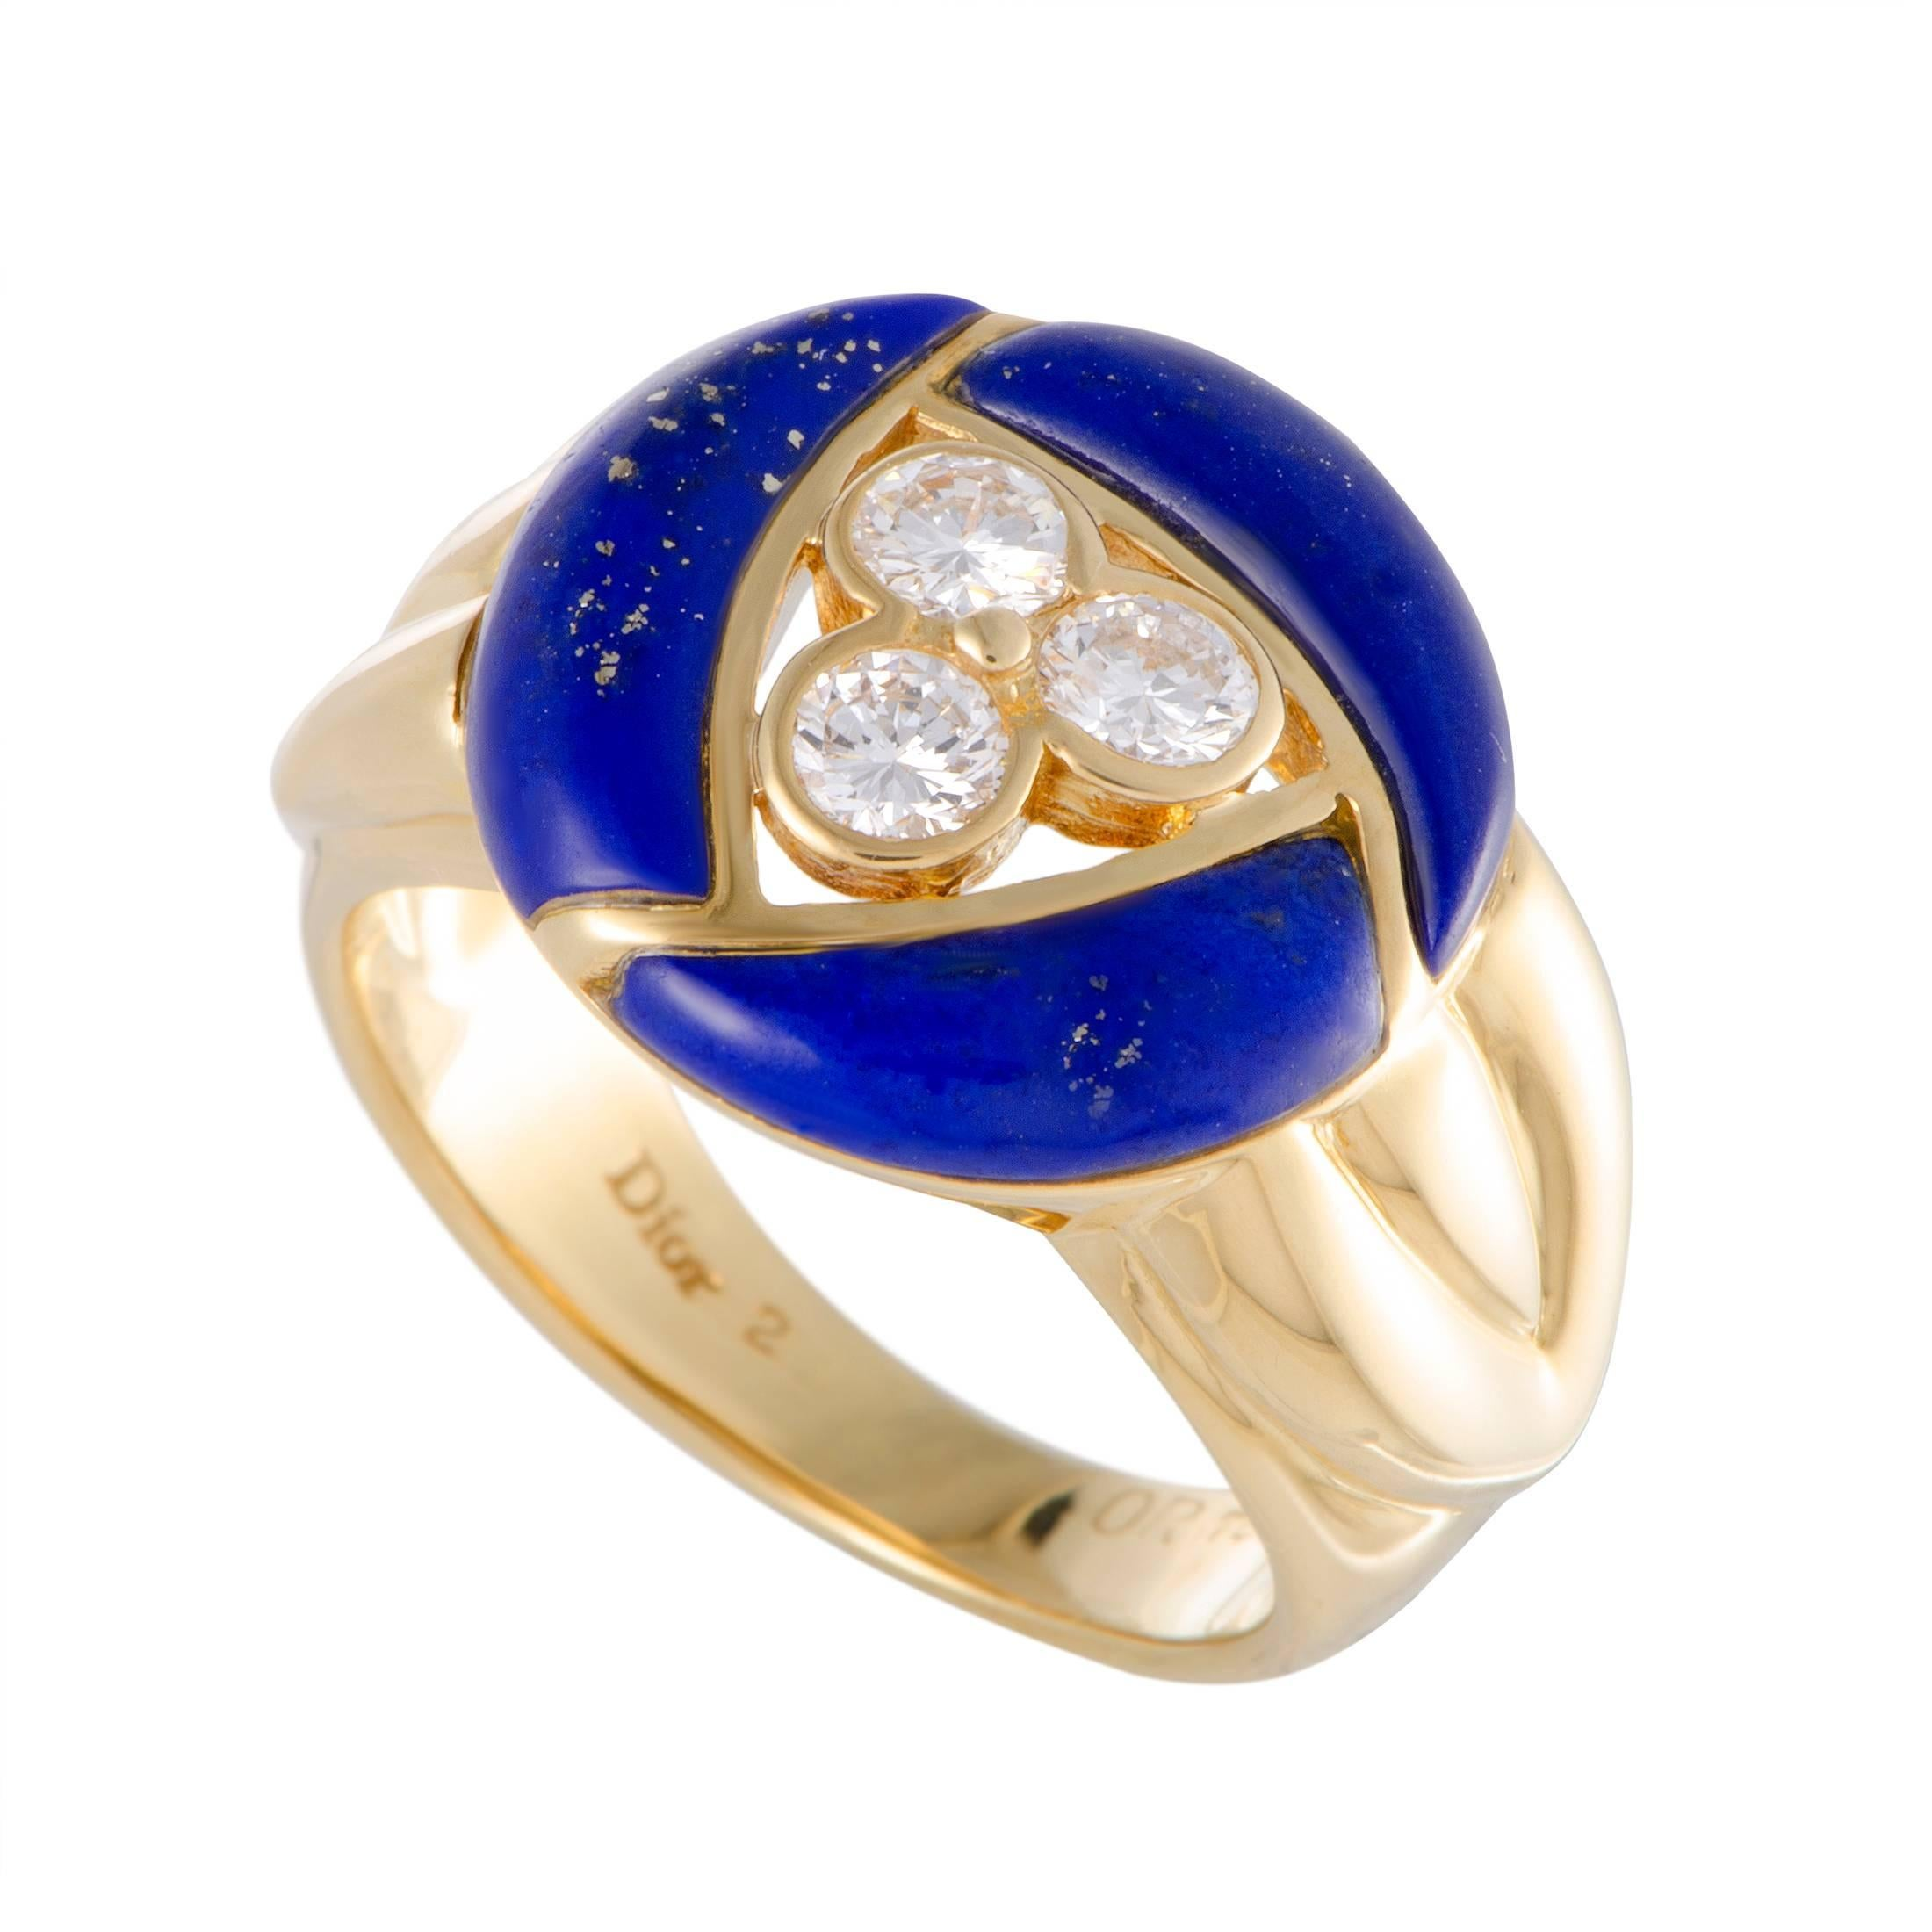 lapis lazuli diamond and gold ring for sale at 1stdibs